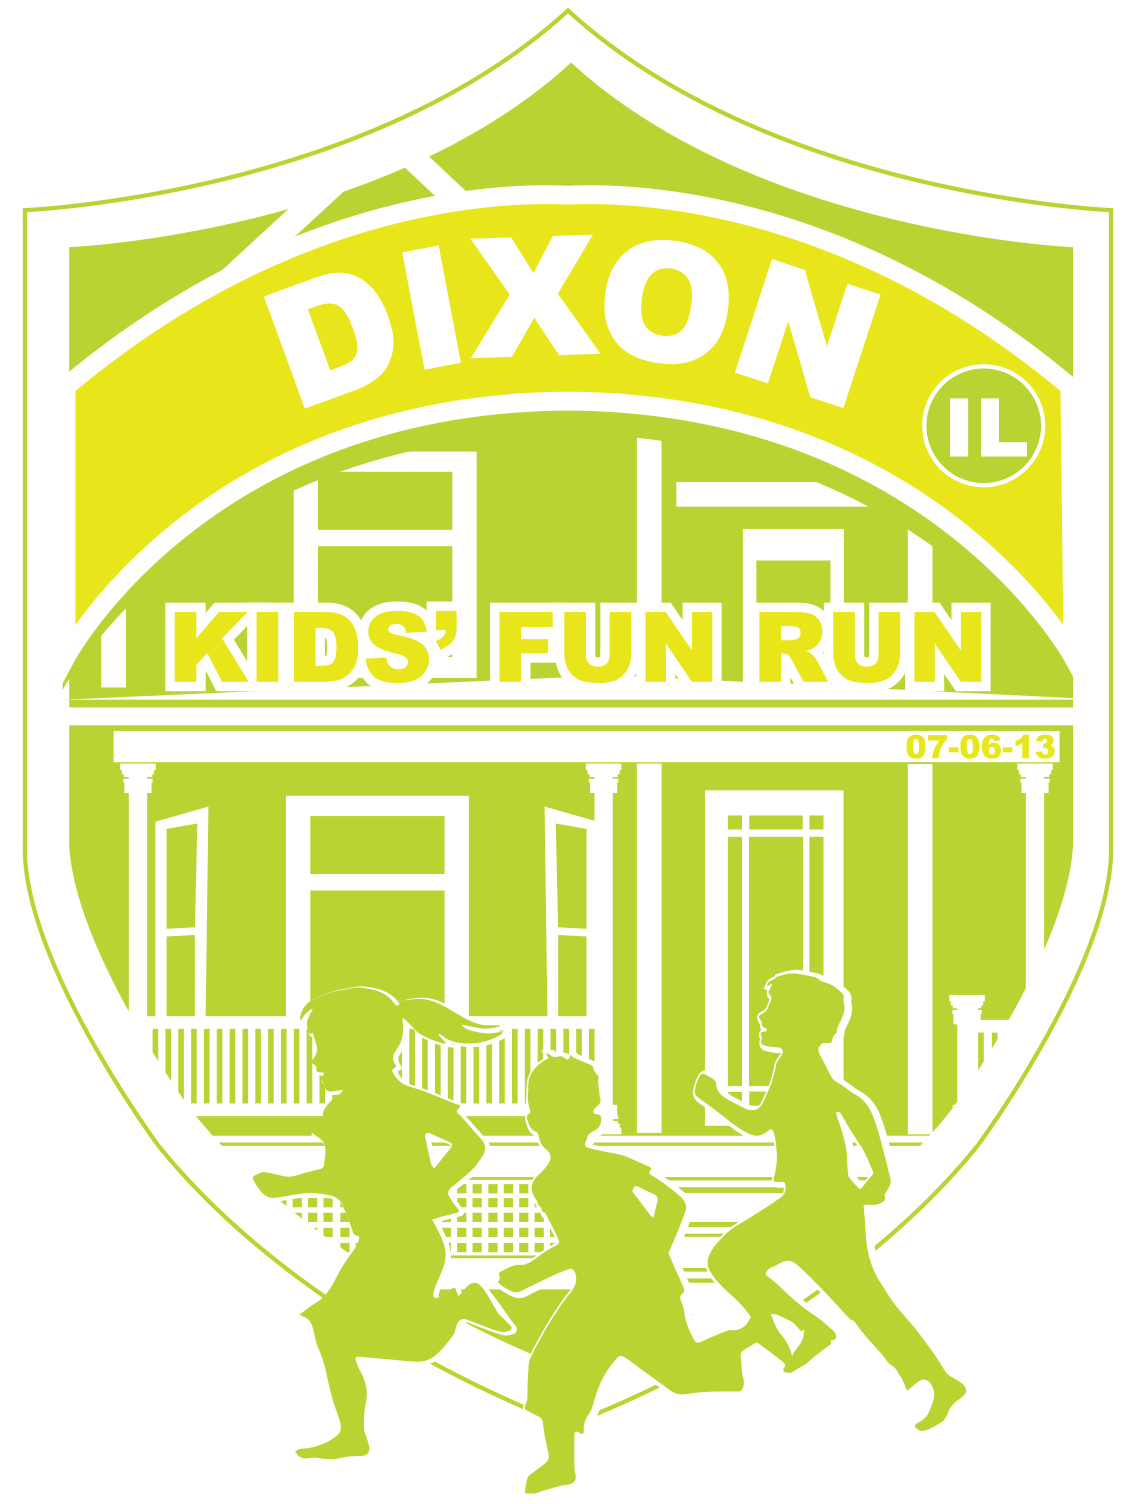 kids fun run 2013